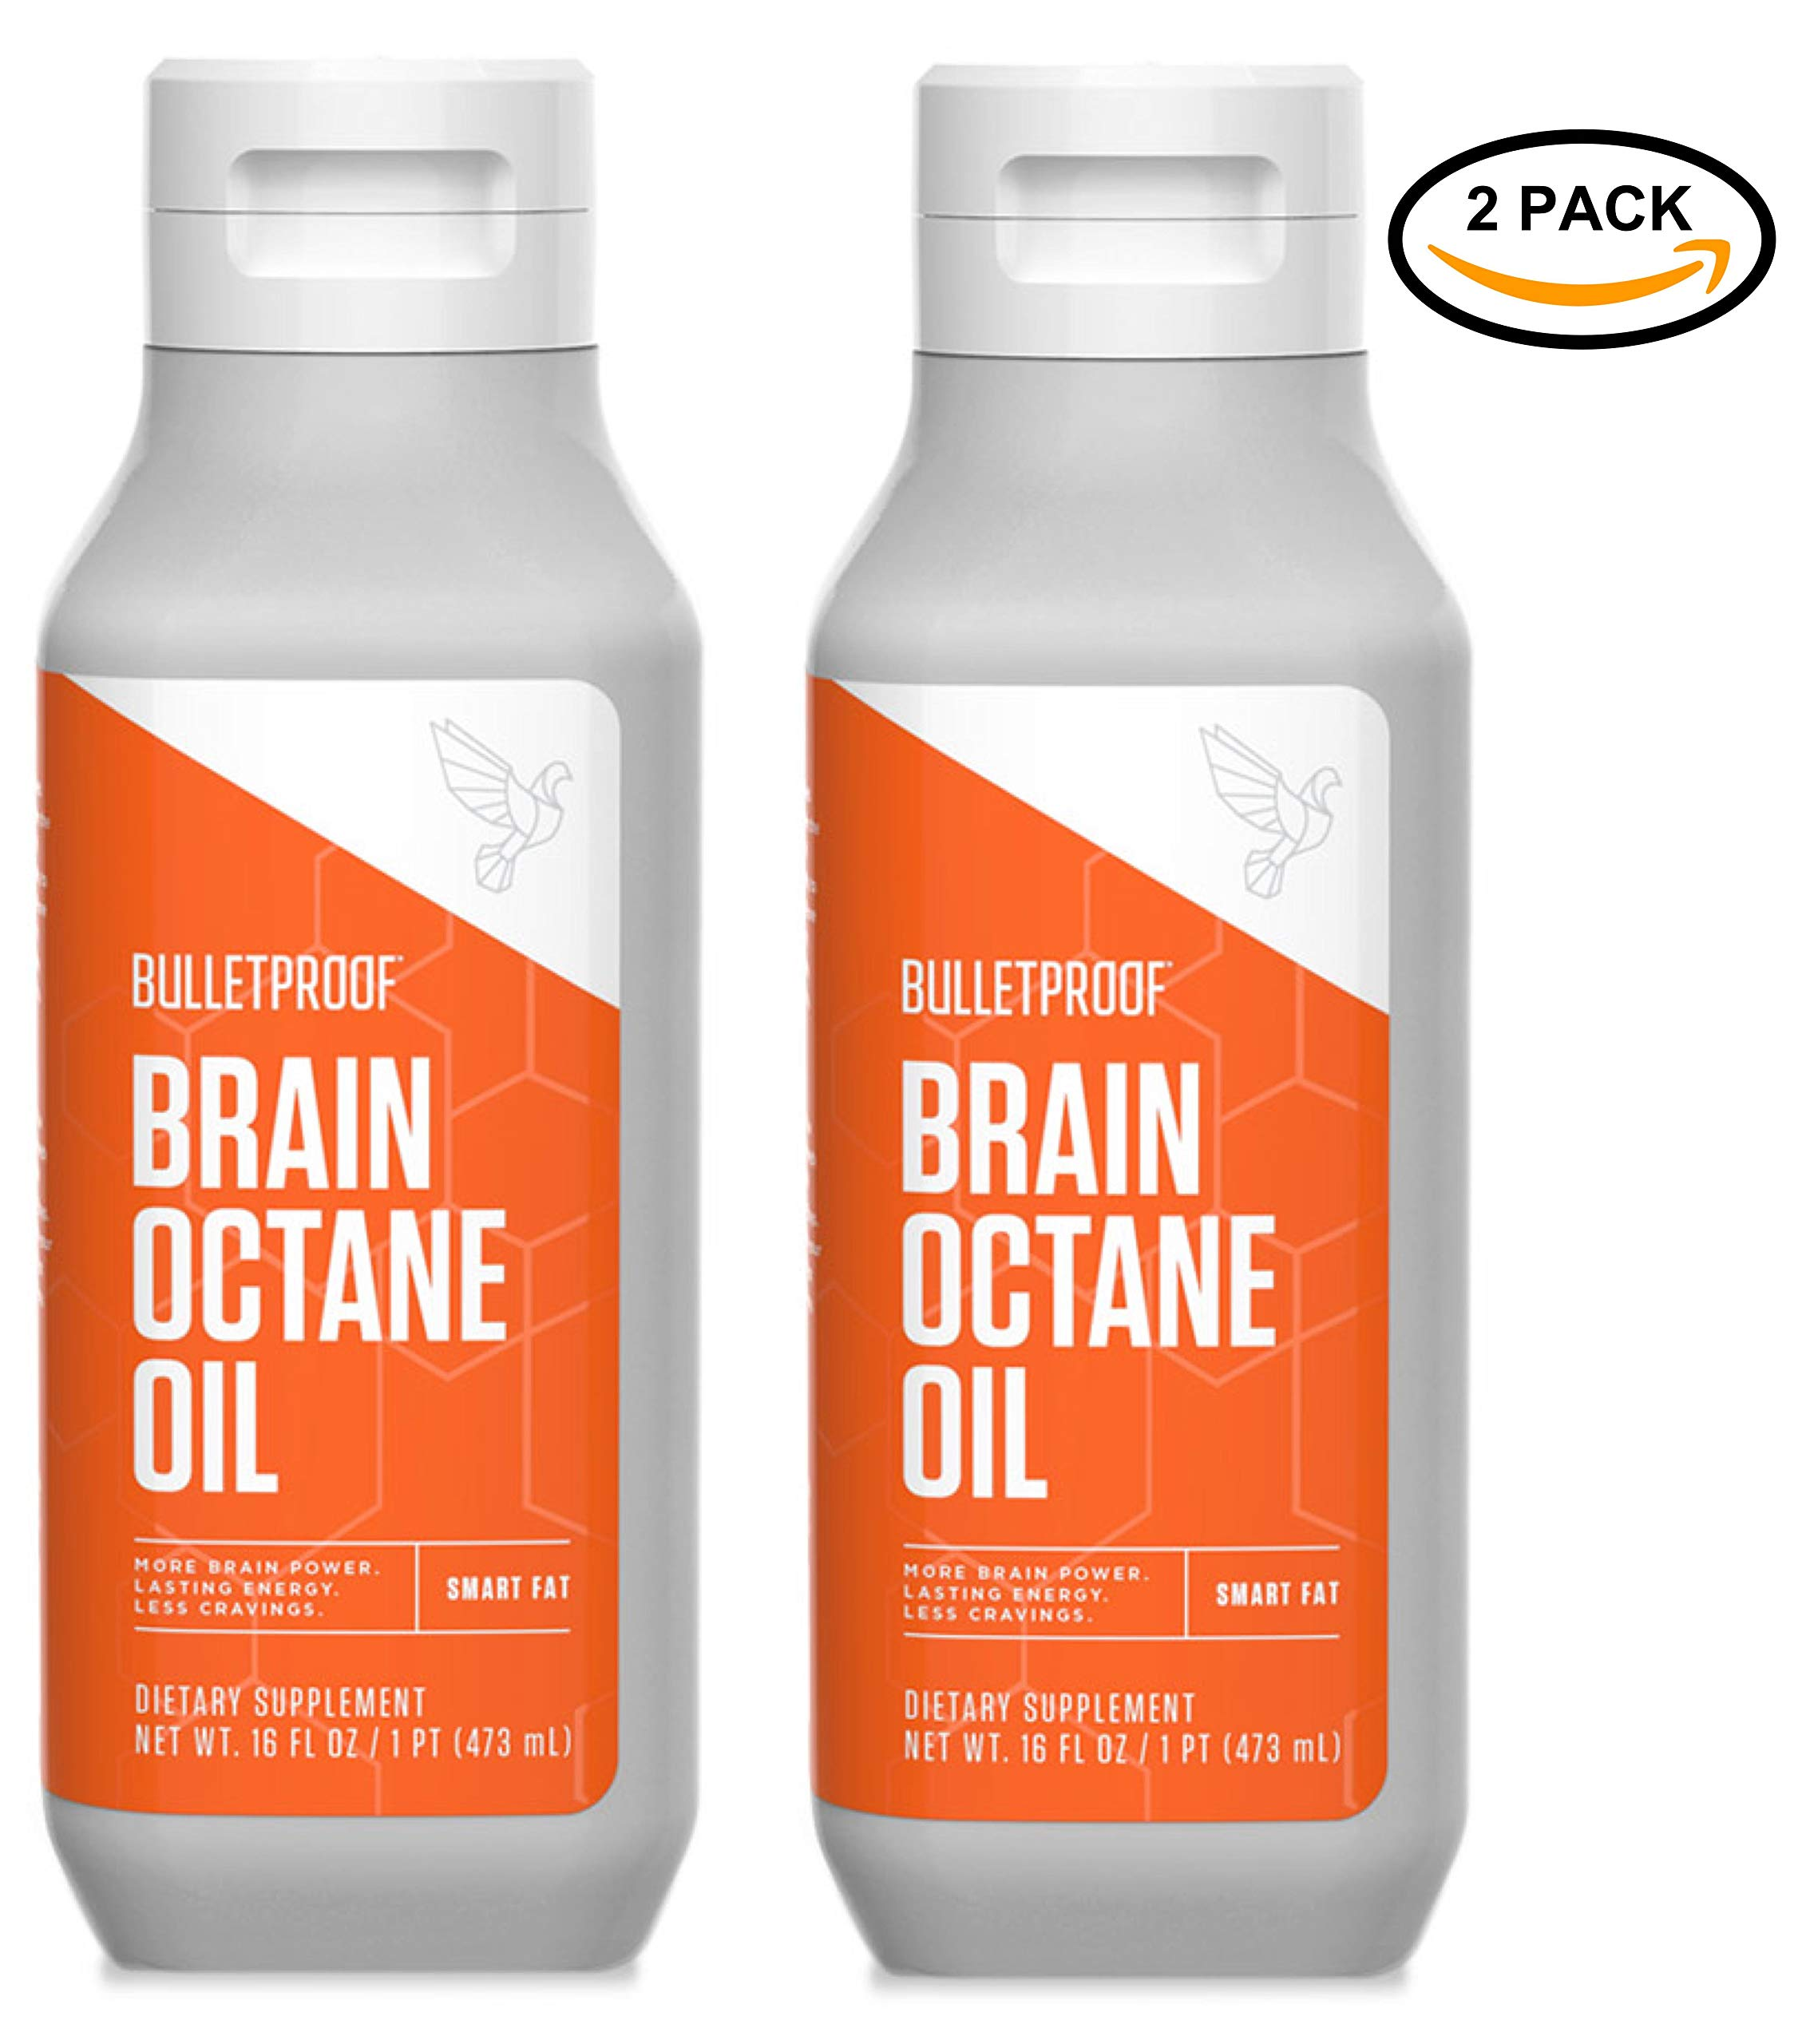 Bulletproof Brain Octane MCT Oil, Perfect for Keto and Paleo Diet, 100% Non-GMO Premium C8 Oil, Ketogenic Friendly, Responsibly Sourced from Coconuts Only, Made in the USA (2-Pack of 16oz) by Bulletproof